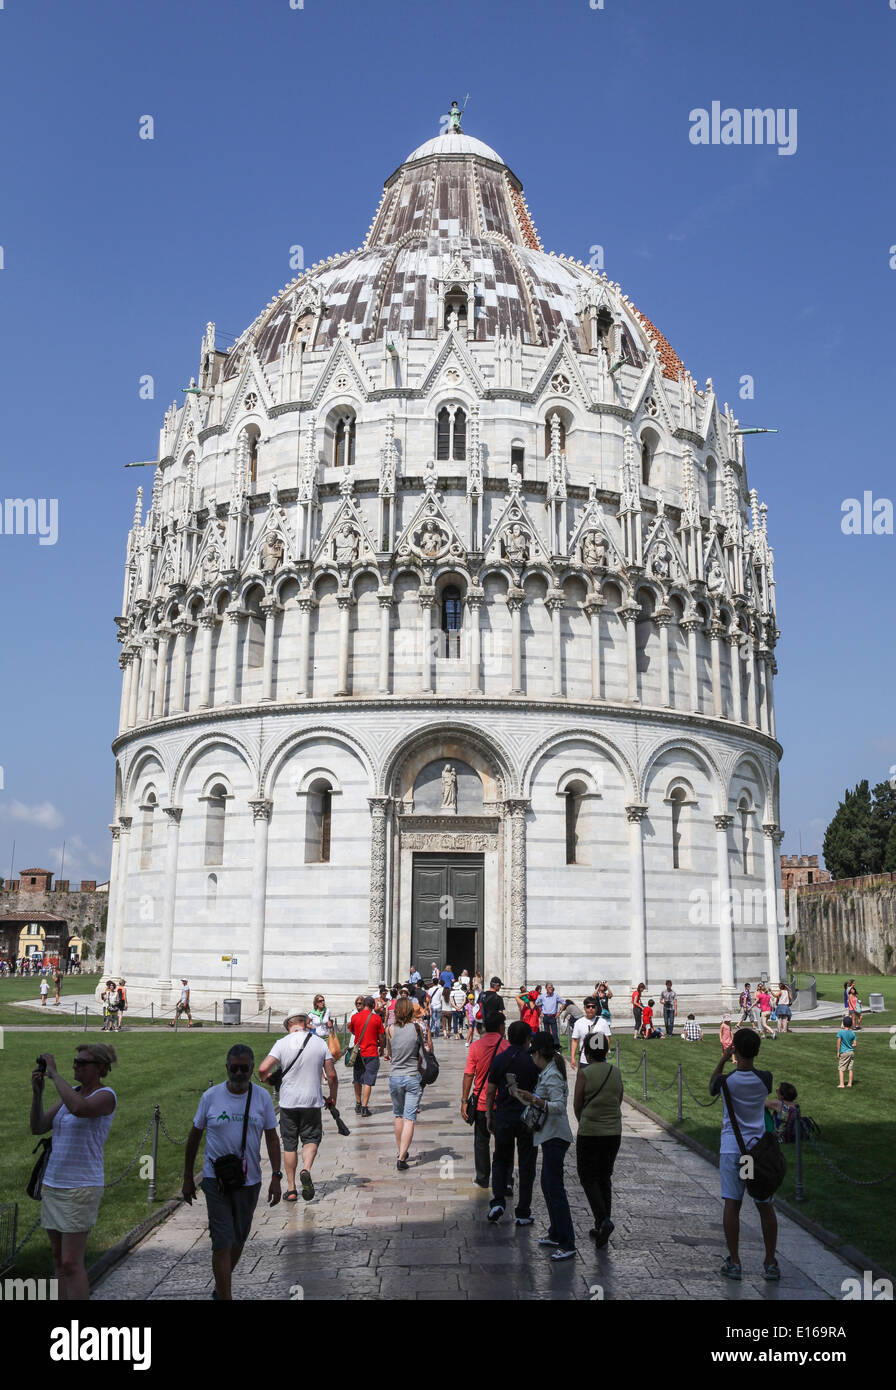 Tourists strolling around The Baptistry of St. John at the Piazza dei Miracoli in the Tuscany city of Pisa, Italy. Stock Photo